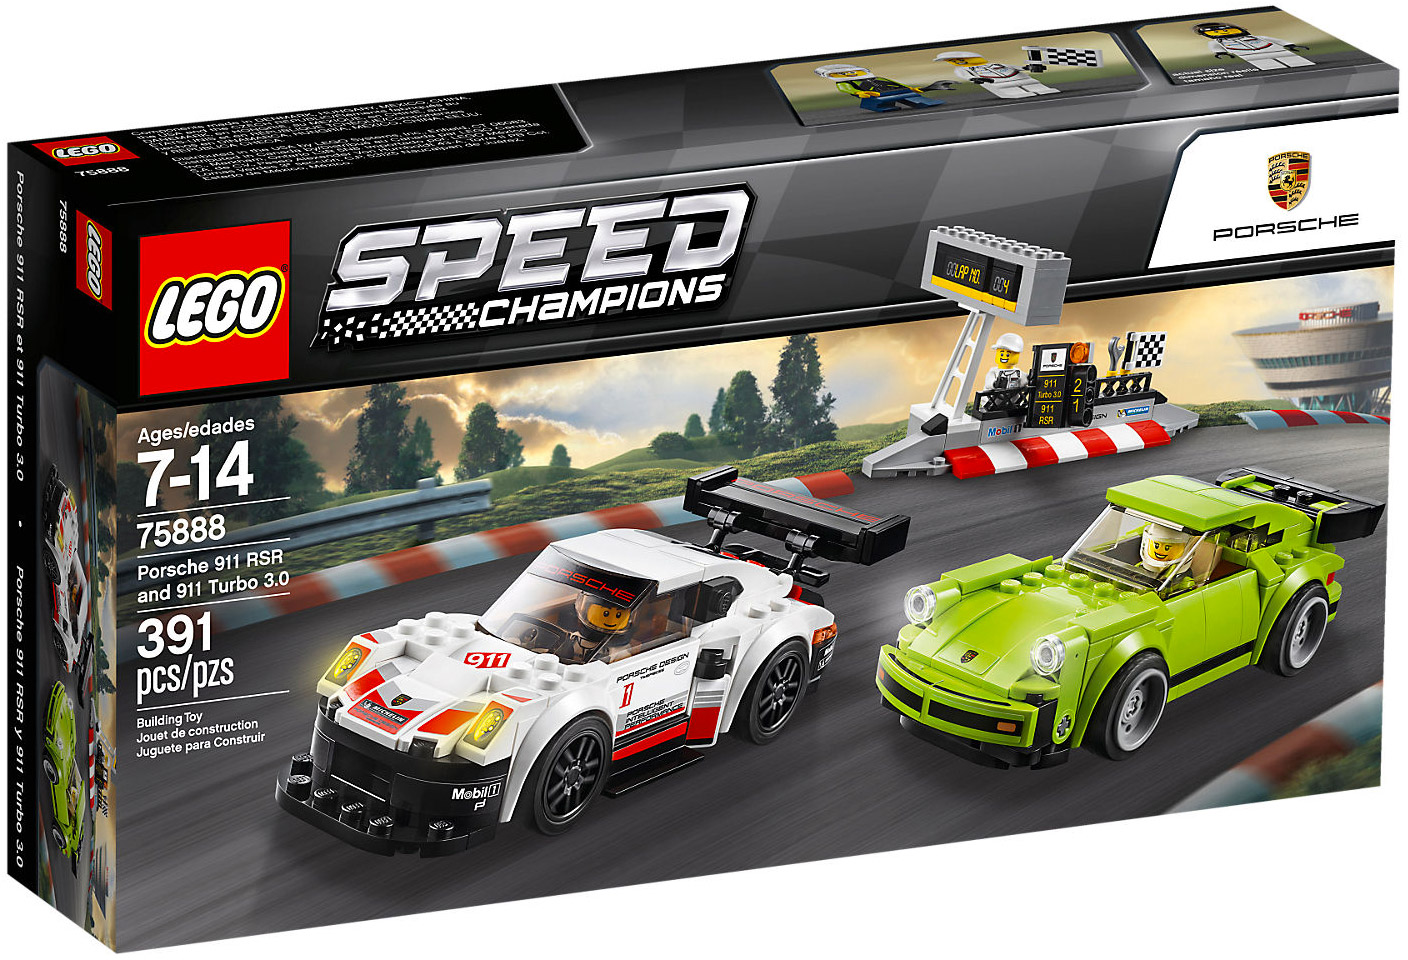 lego speed champions 75888 pas cher porsche 911 rsr et 911 turbo 3 0. Black Bedroom Furniture Sets. Home Design Ideas